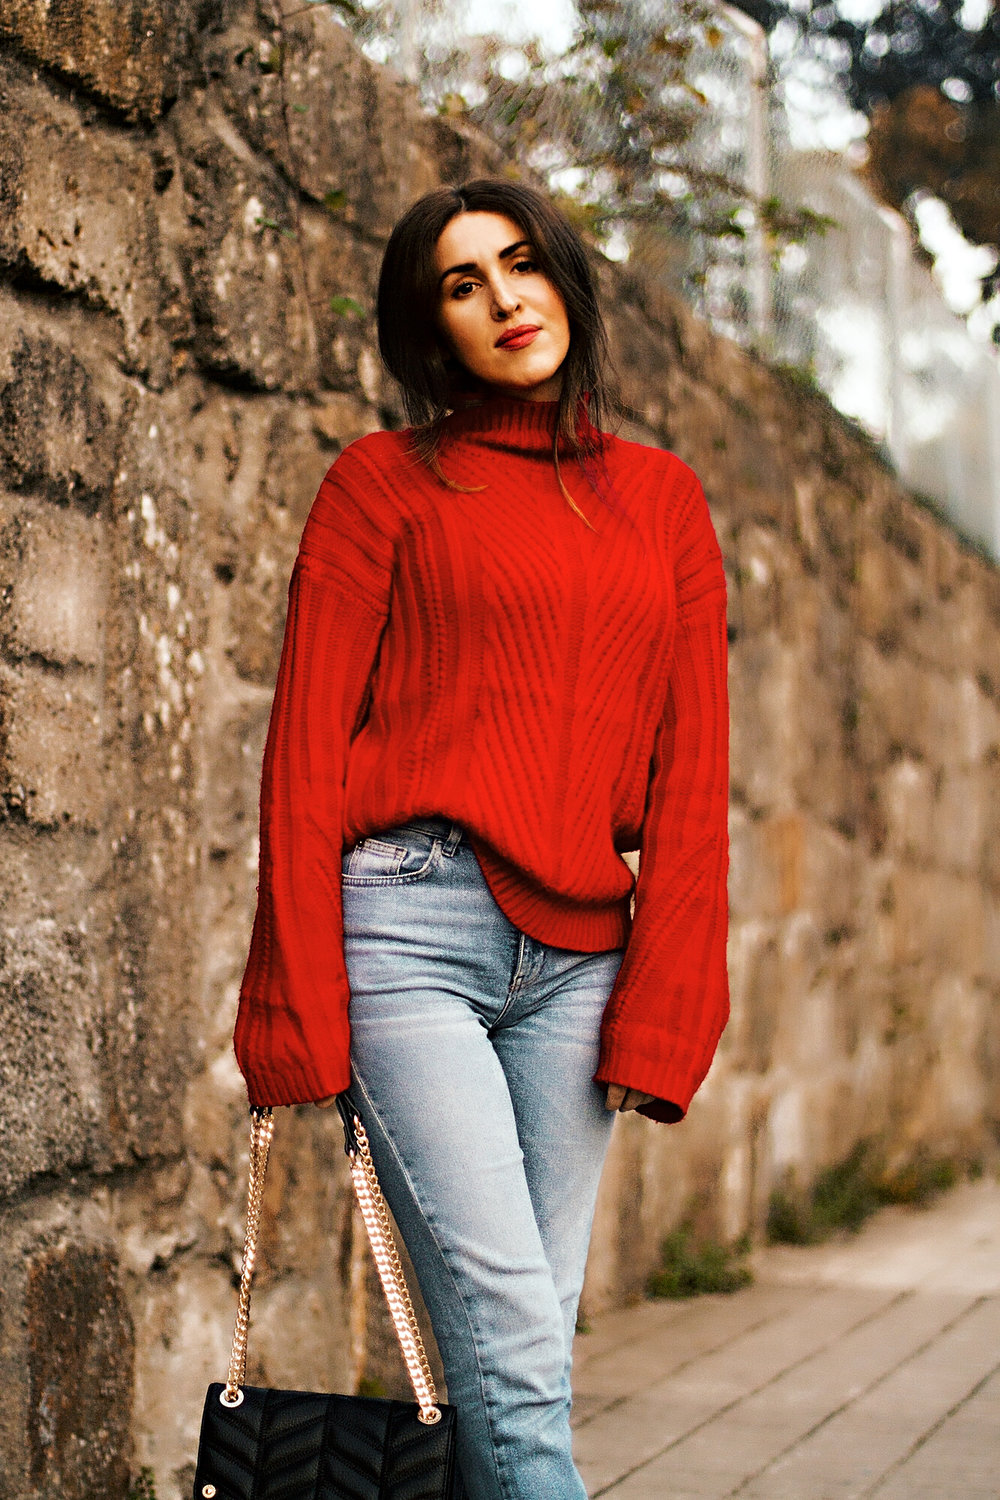 Kate Caviar x Zaful Red Sweater